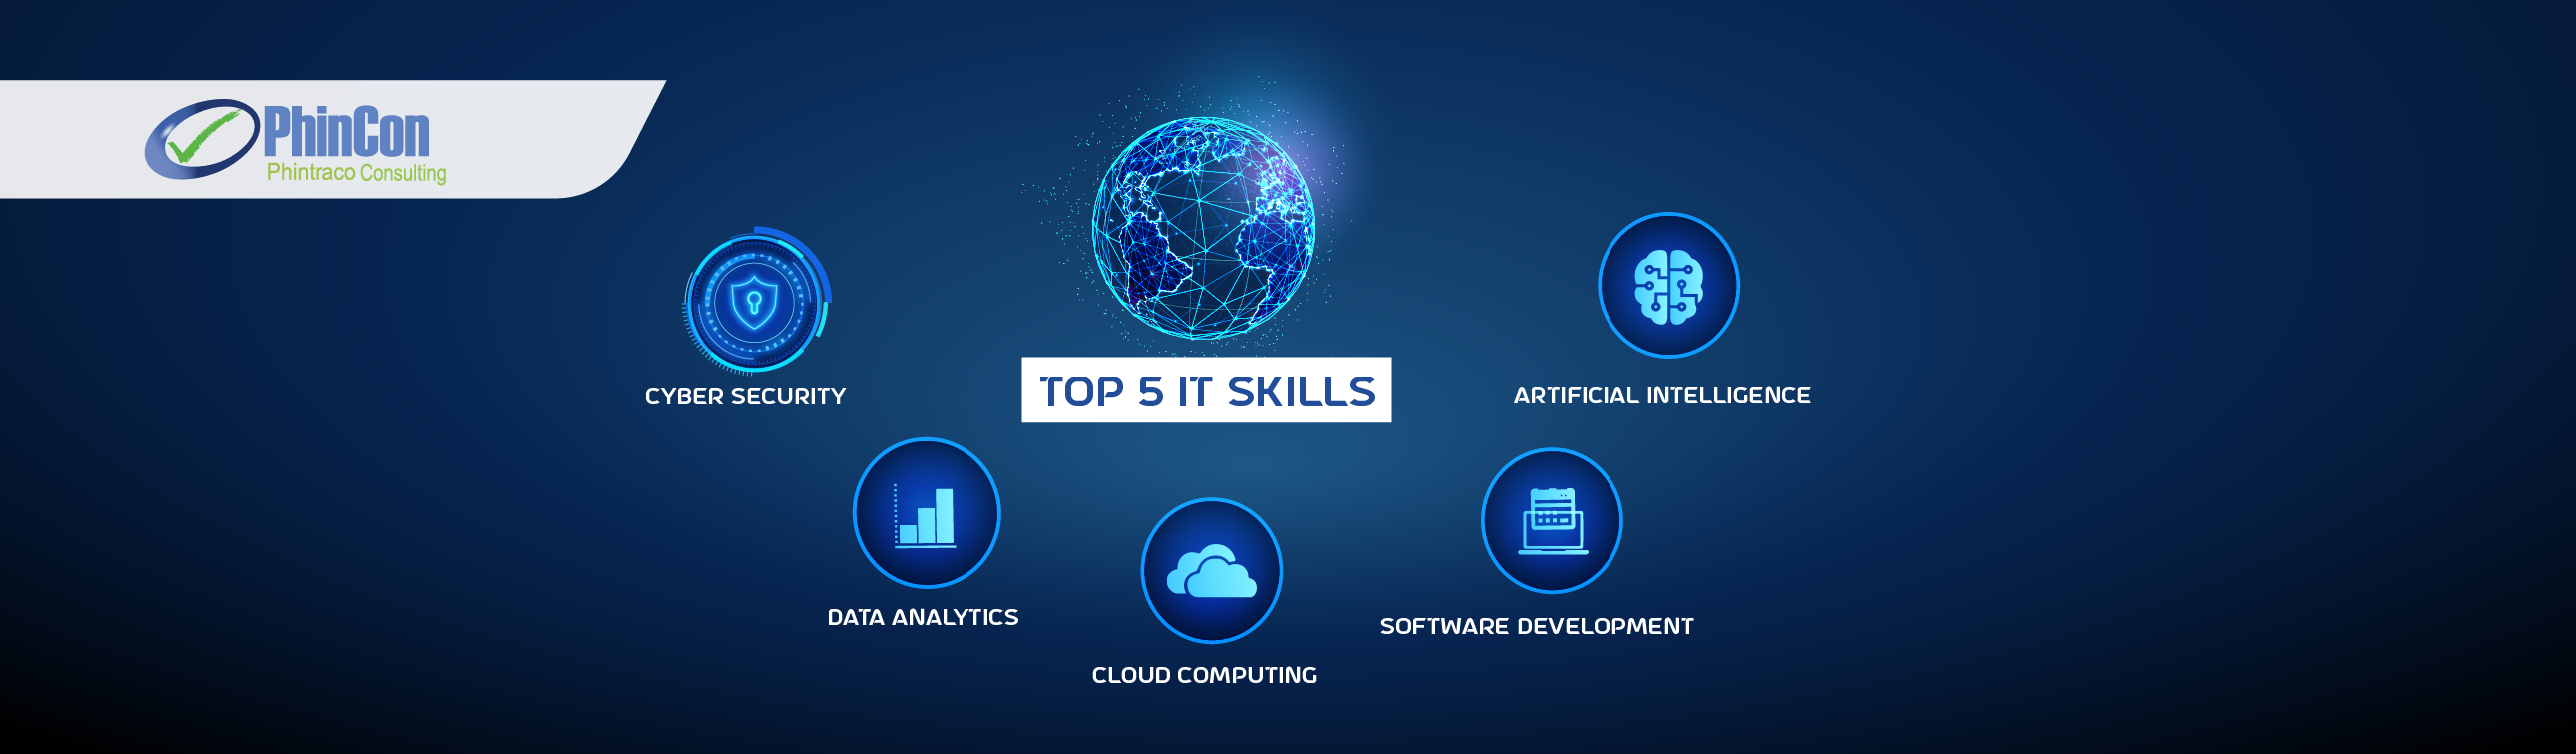 5 In-Demand IT Skills in 2021 and Beyond - PhinCon